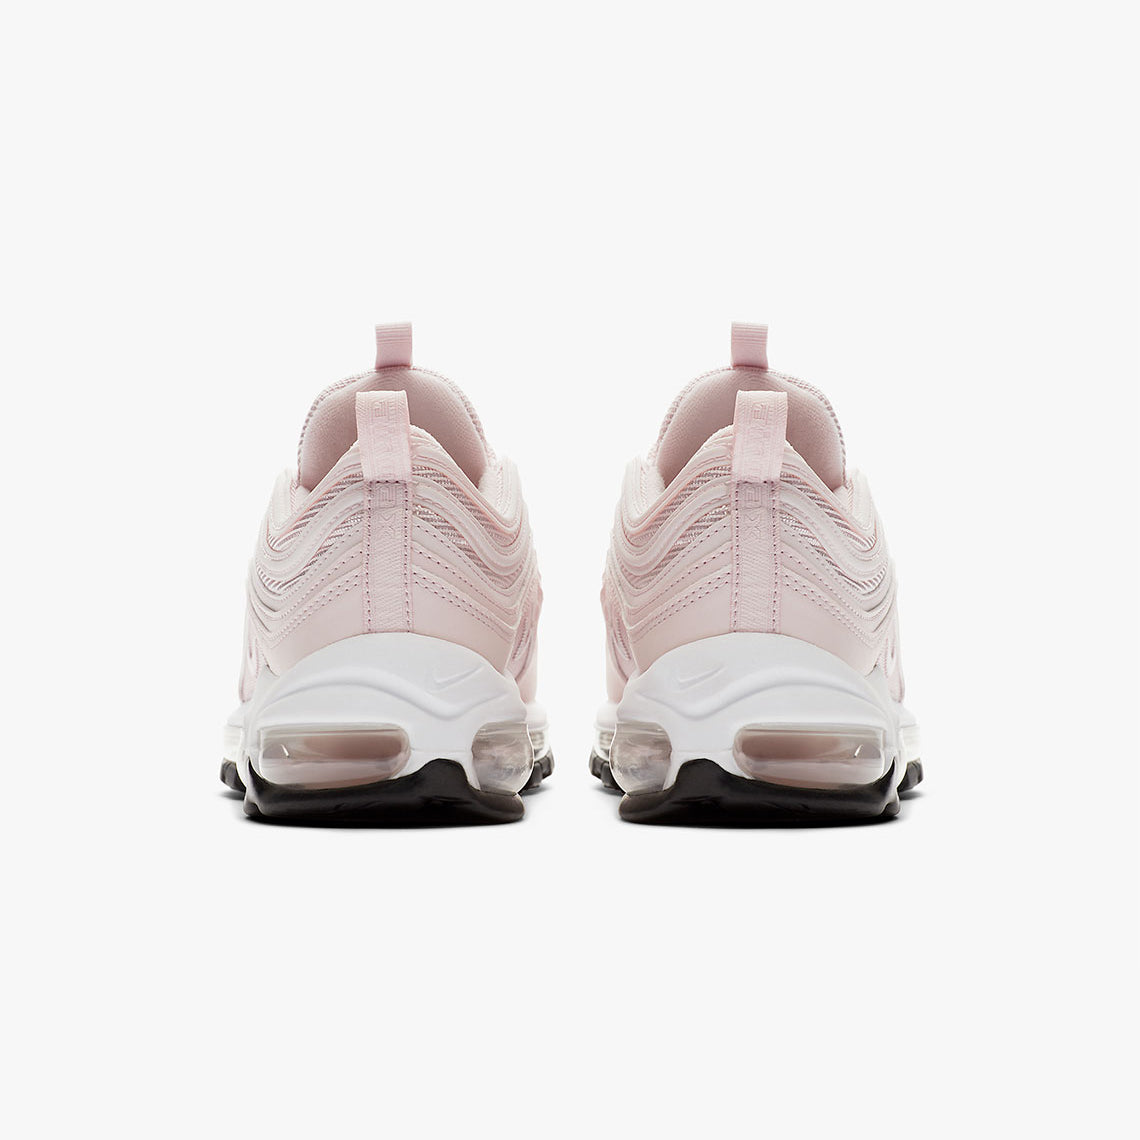 14b6d49c8392 Nike Wmns Air Max 97 BARELY ROSE BARELY ROSE-BLACK. Item Number  921733-600